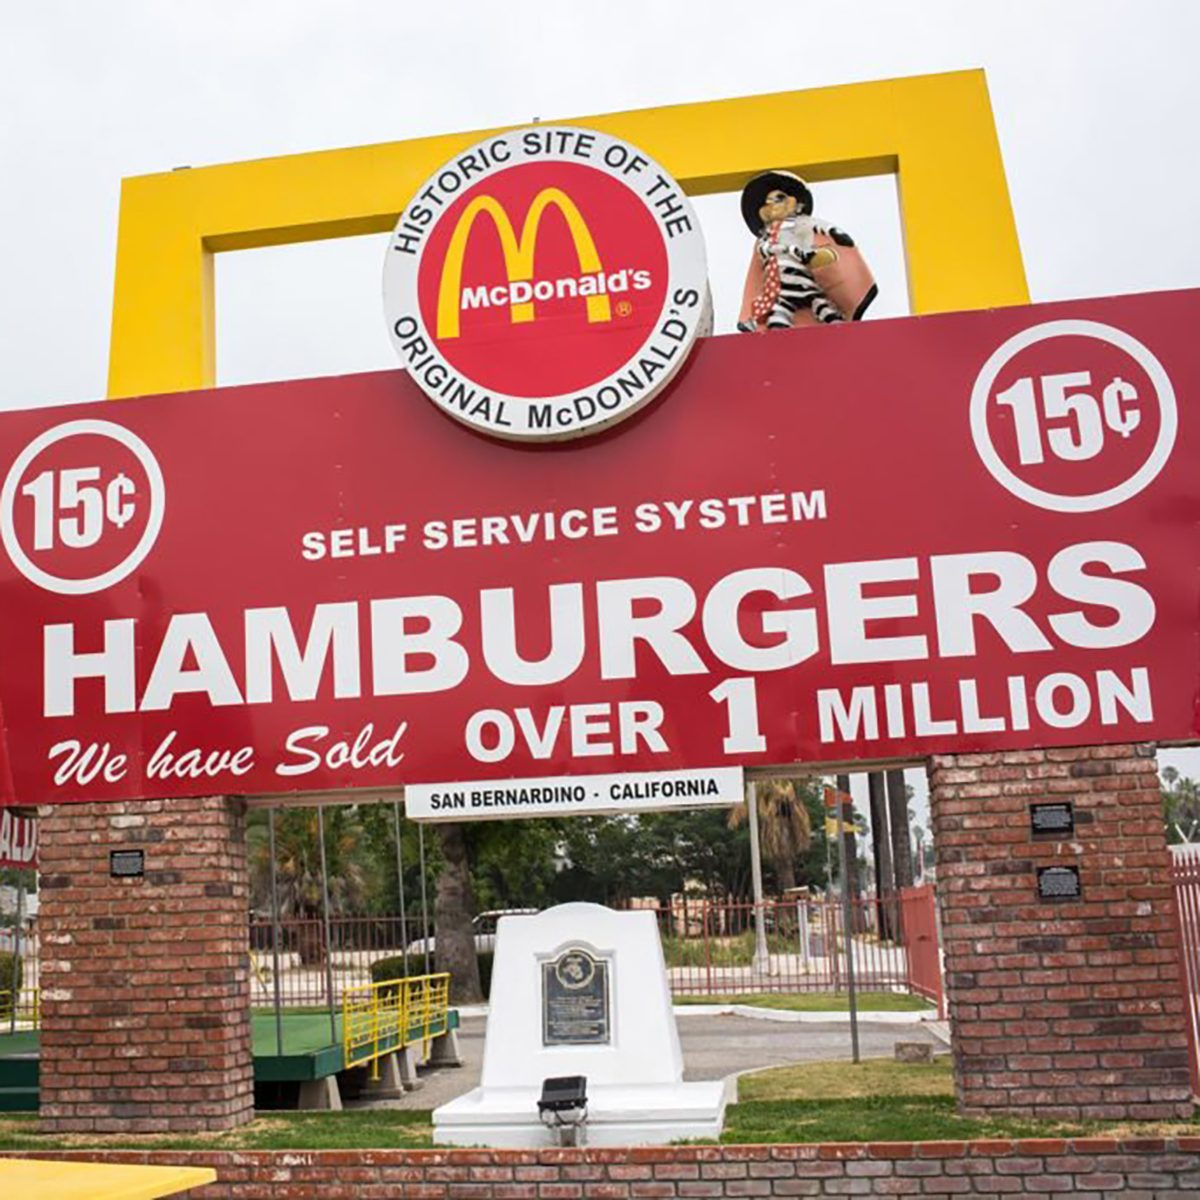 McDonald's hamburgers original location